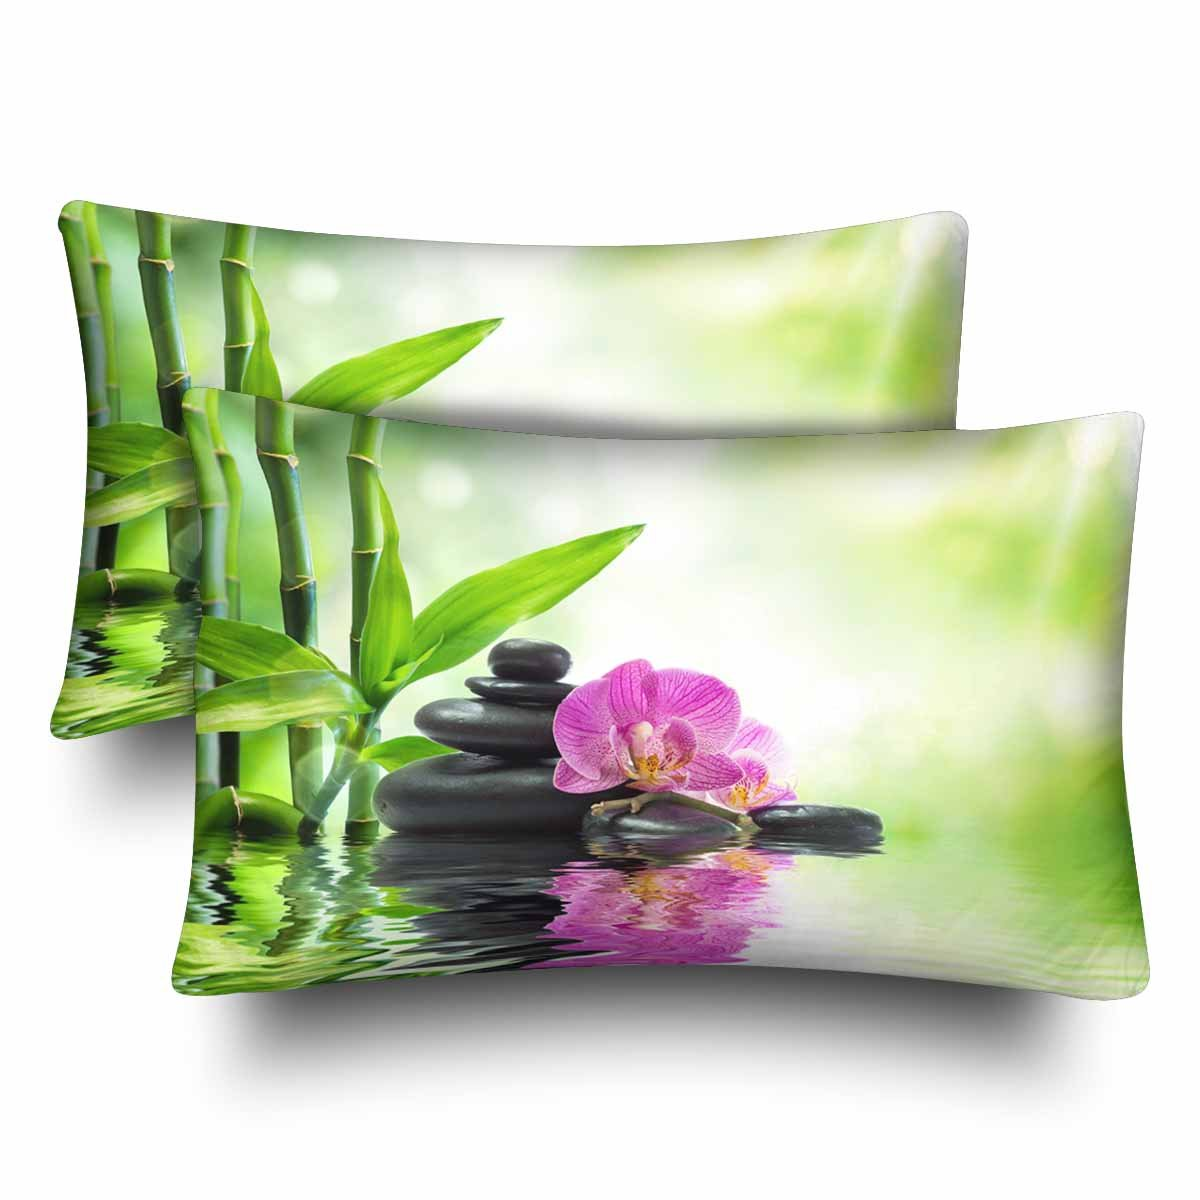 InterestPrint Spa Purple Orchids Black Stones Bamboo on Water Pillow Cases Pillowcase Queen Size 20x30 Set of 2, Rectangle Pillow Covers Protector for Home Couch Sofa Bedroom Decoration